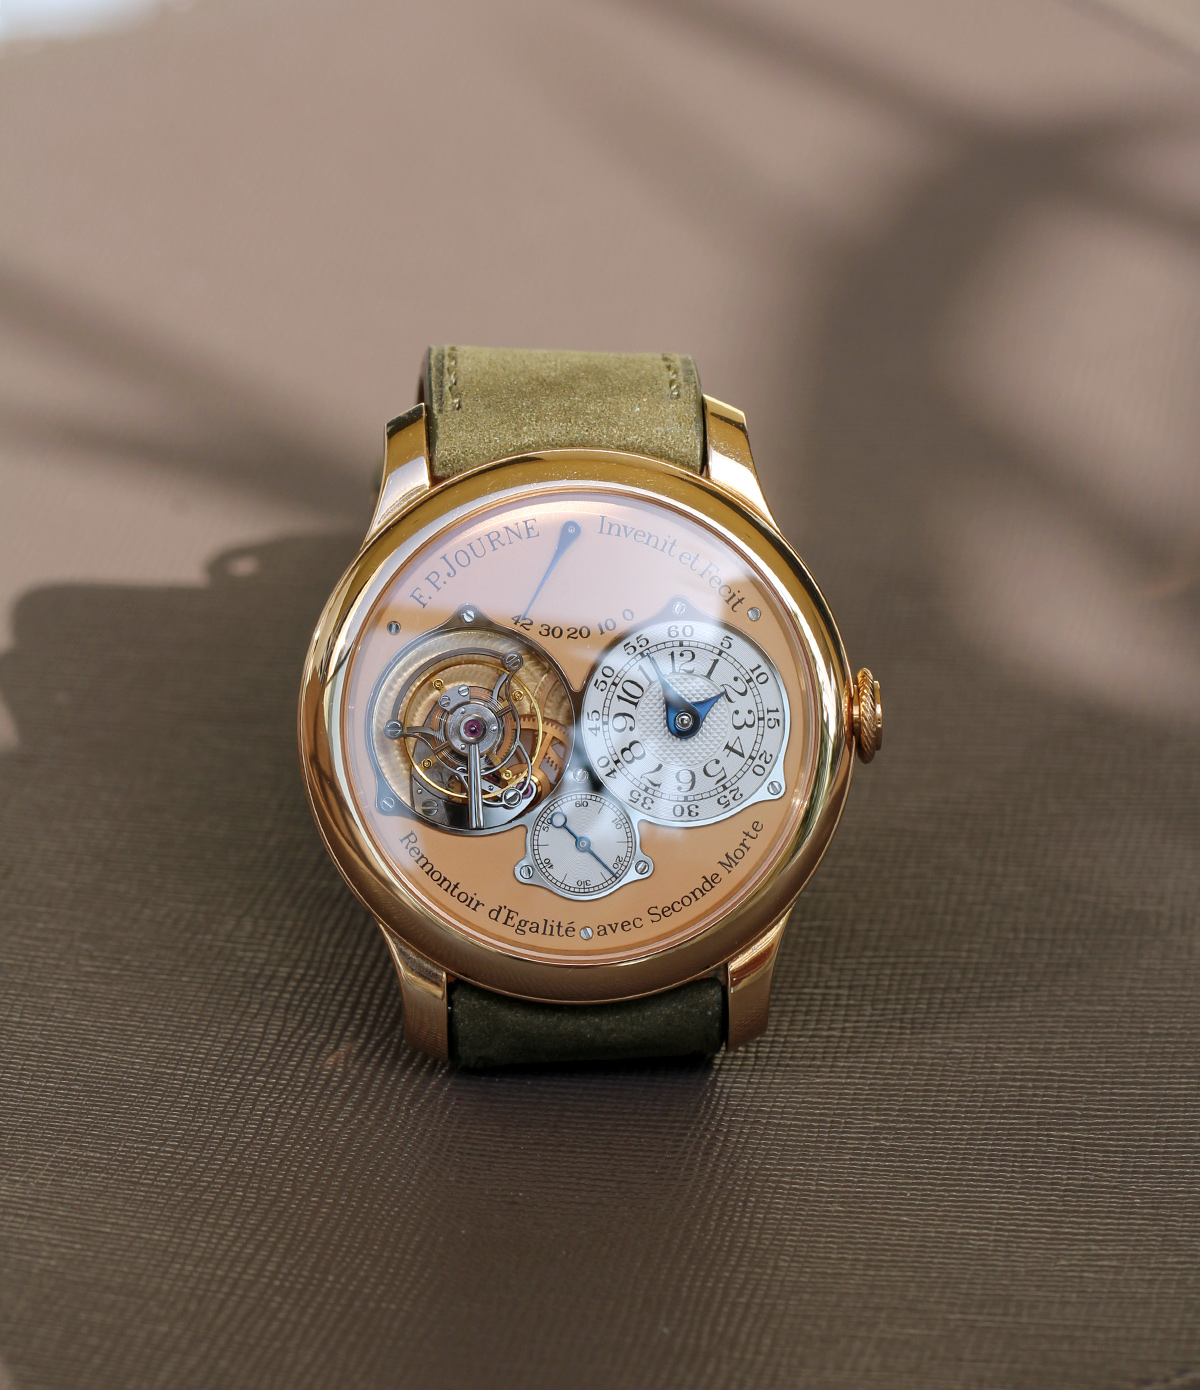 FP-Journe-Tourbillon-Souverain-Original